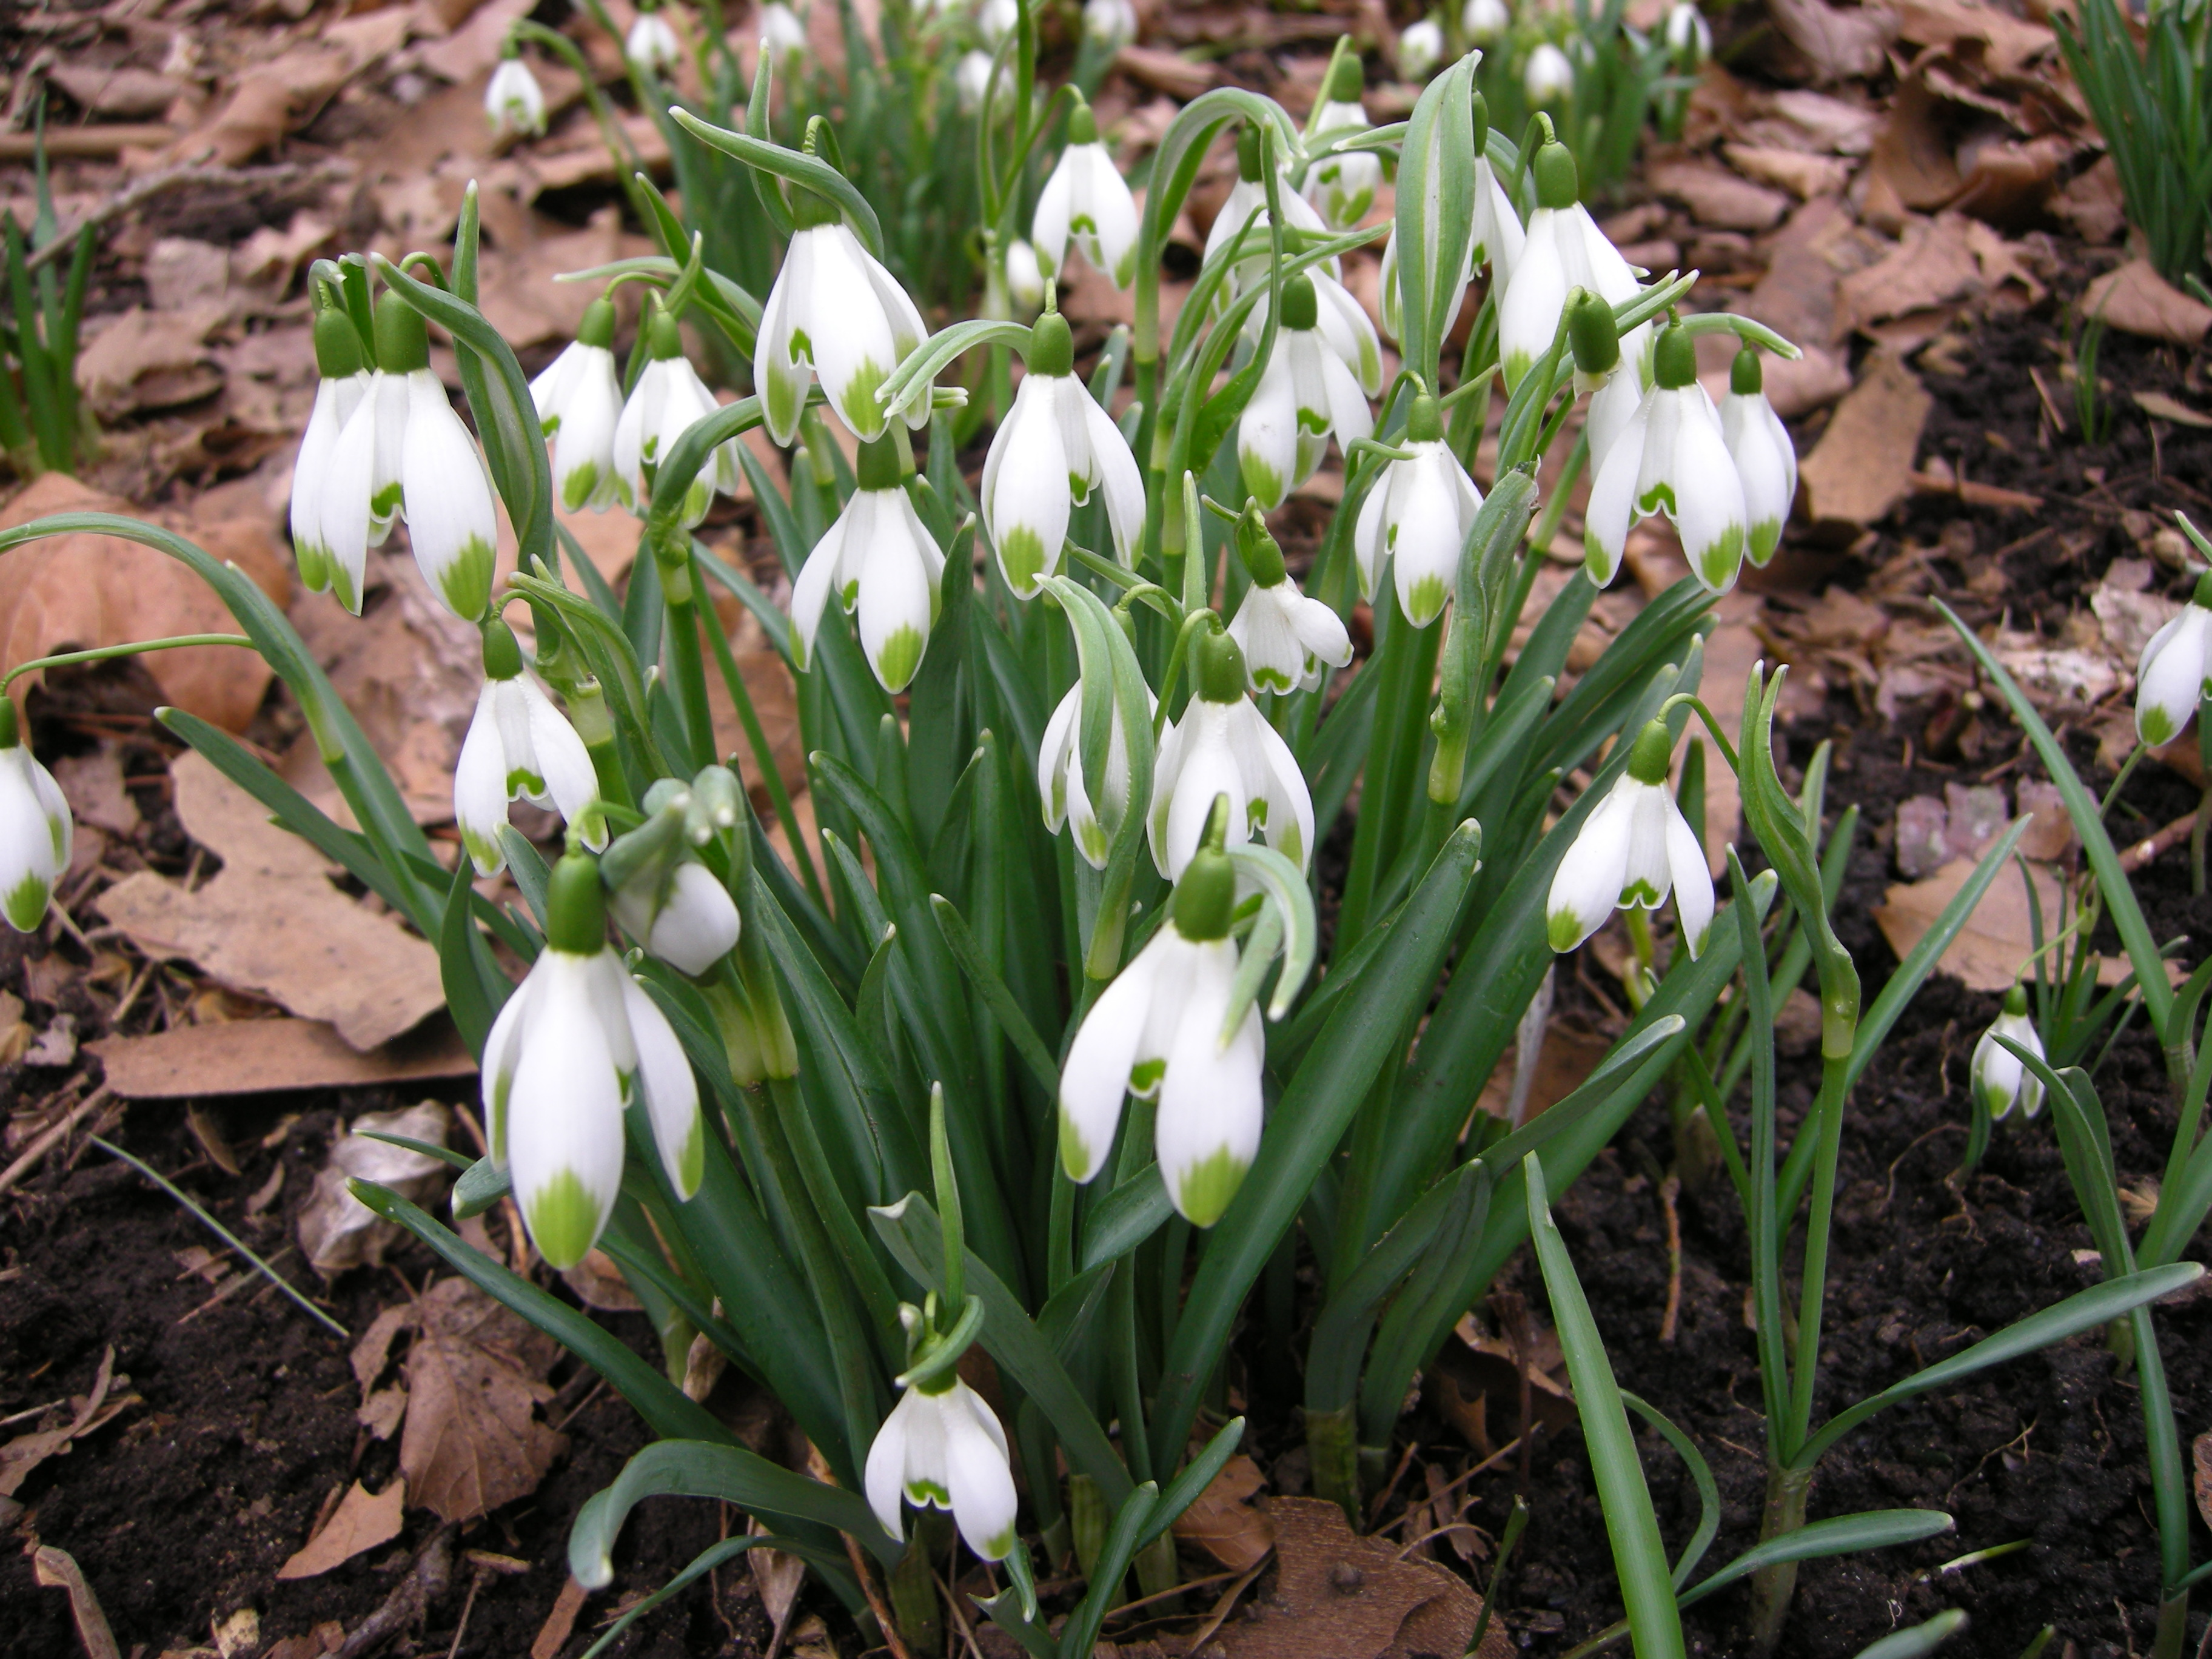 the snowdrops Visitors have been flocking to a 15th century anglesey manor house to admire its  snowdrop-filled gardens and raise money for cancer research.